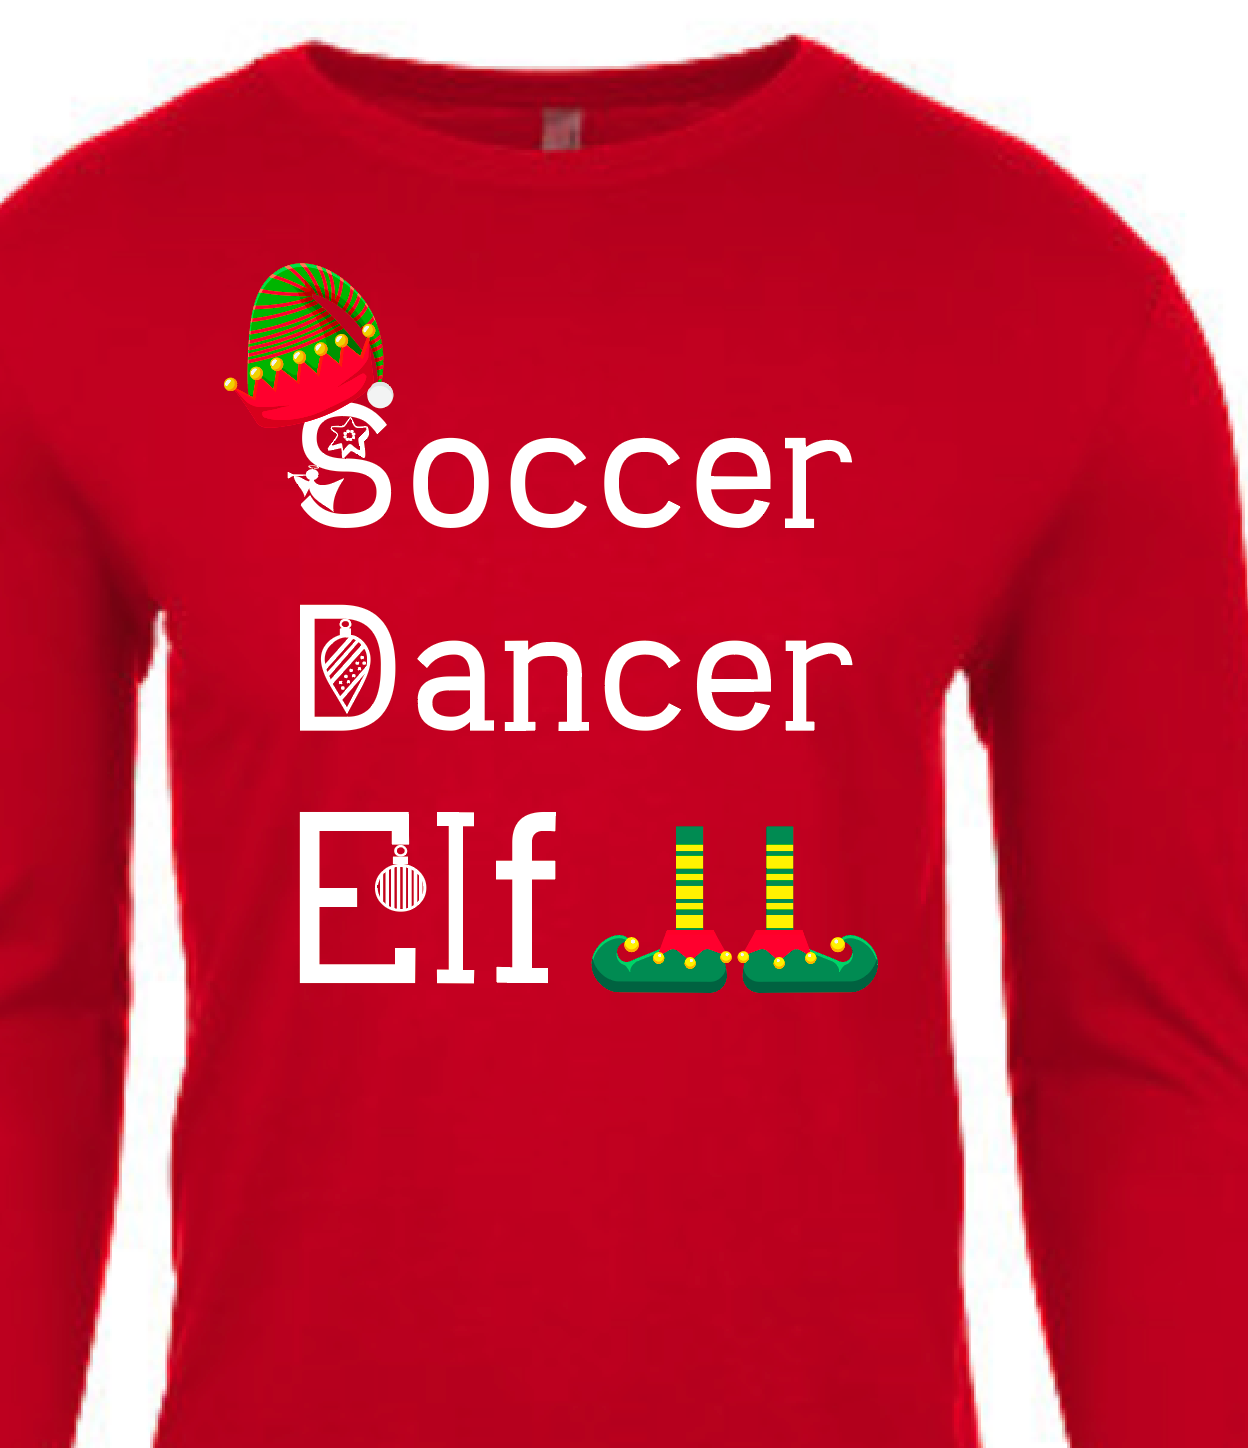 Elf Christmas Family Shirts Infant Toddler Youth Adult Customize Your Own